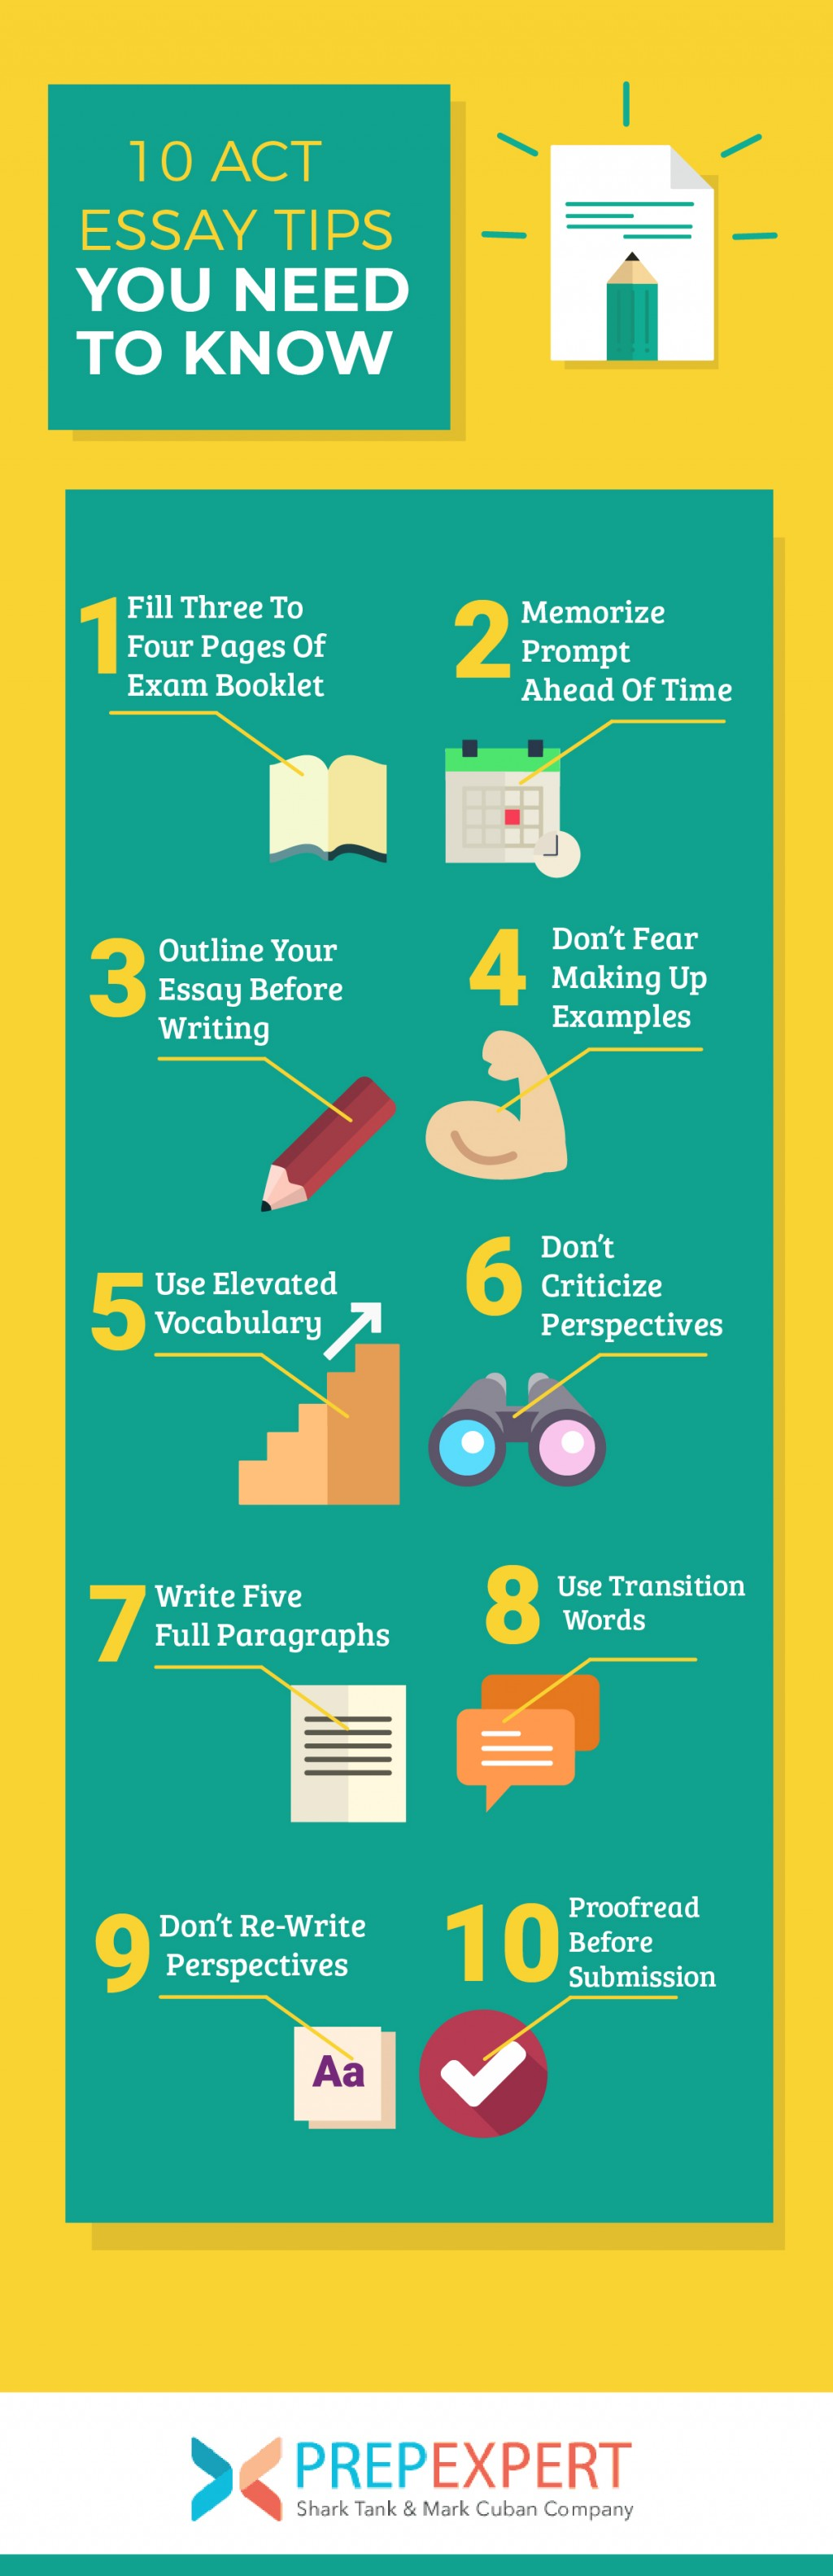 017 Essay Example Act 235585 Essayinfographics 052918 Fearsome Rubric Tips Score Distribution Large